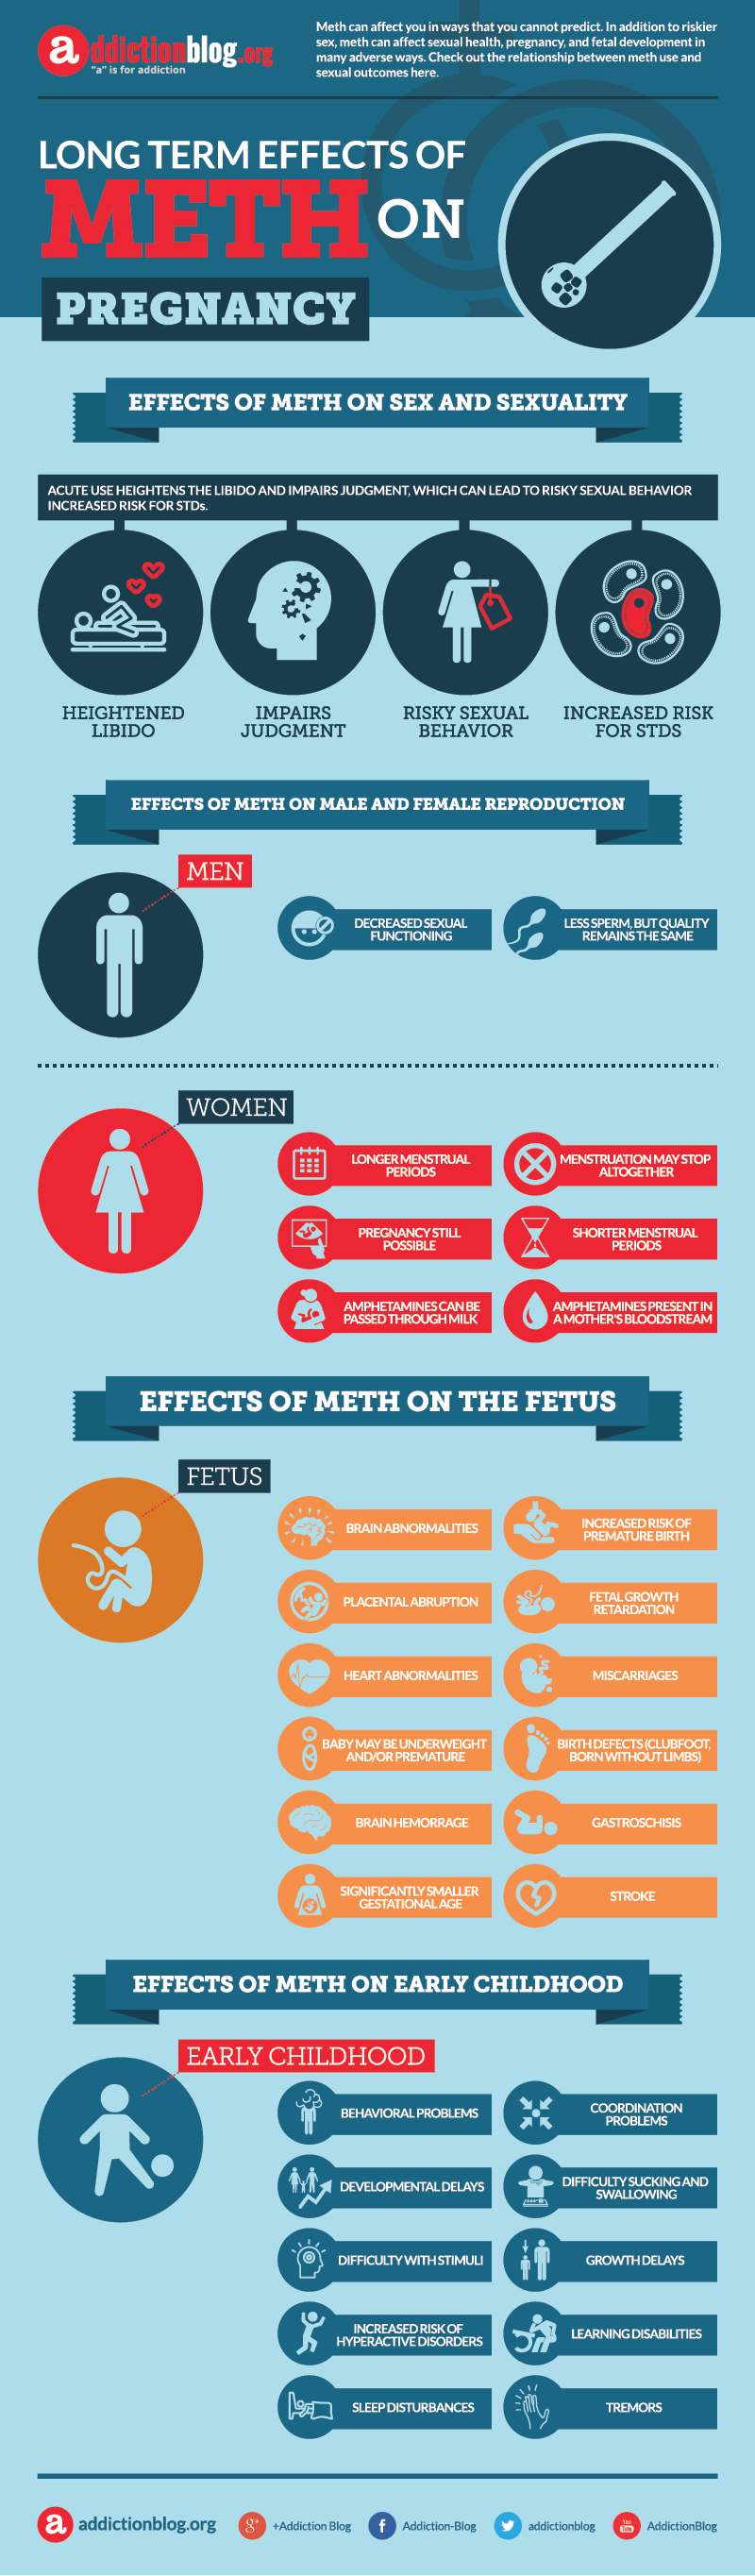 Long term effects of meth on pregnancy (INFOGRAPHIC)